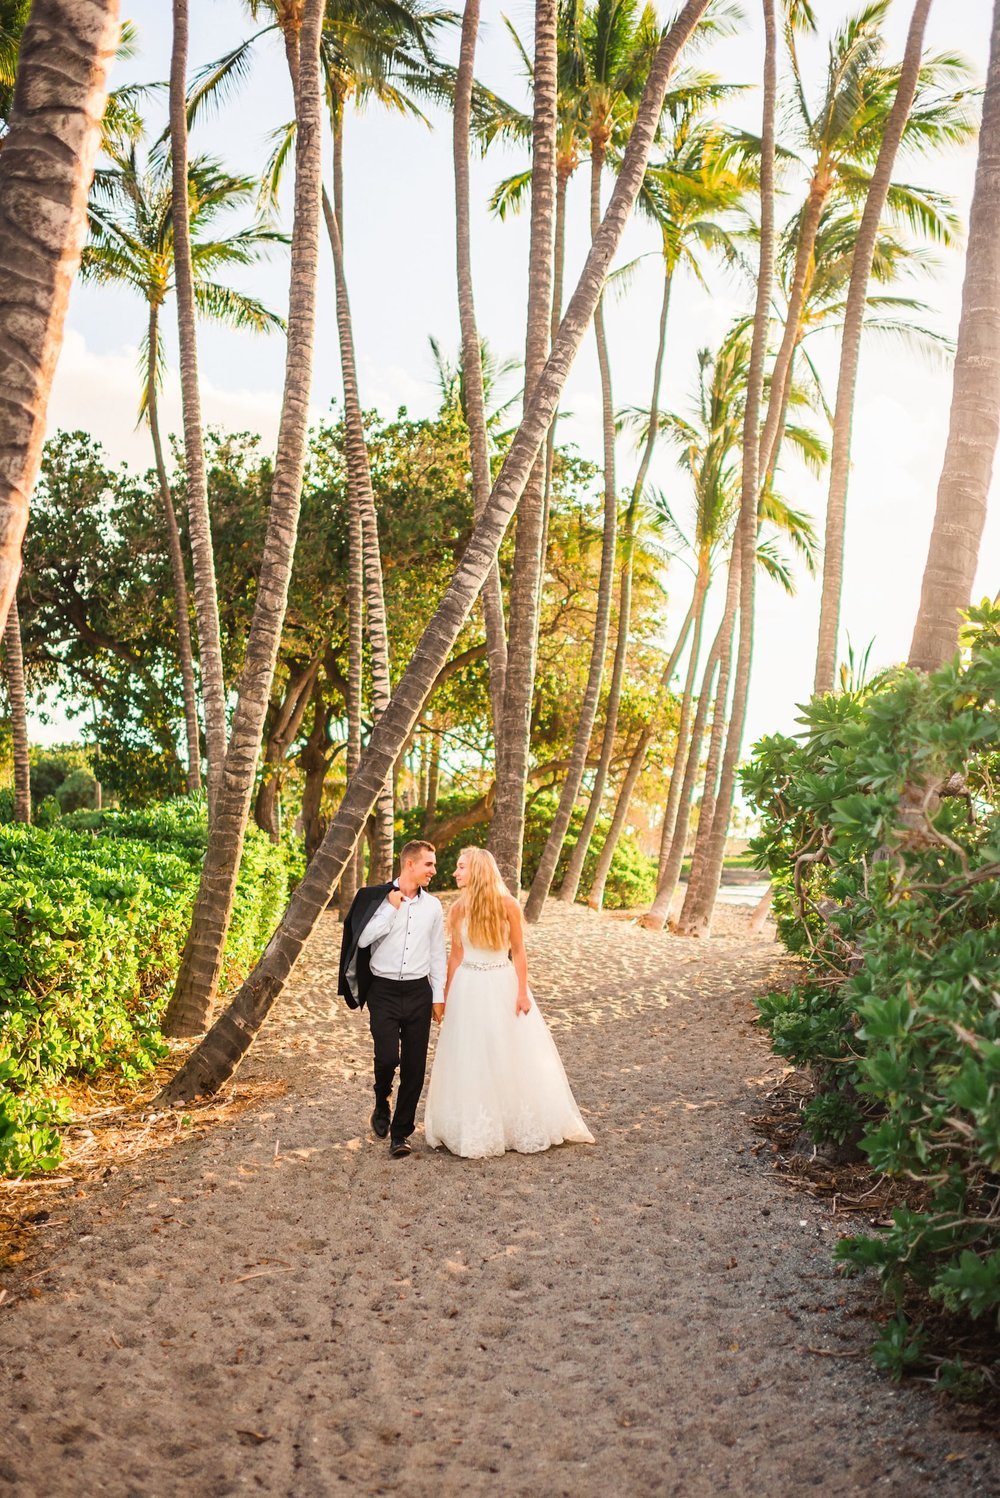 Big-Island-Elopement-Private-Wedding-Hawaii-Beach-02.jpg